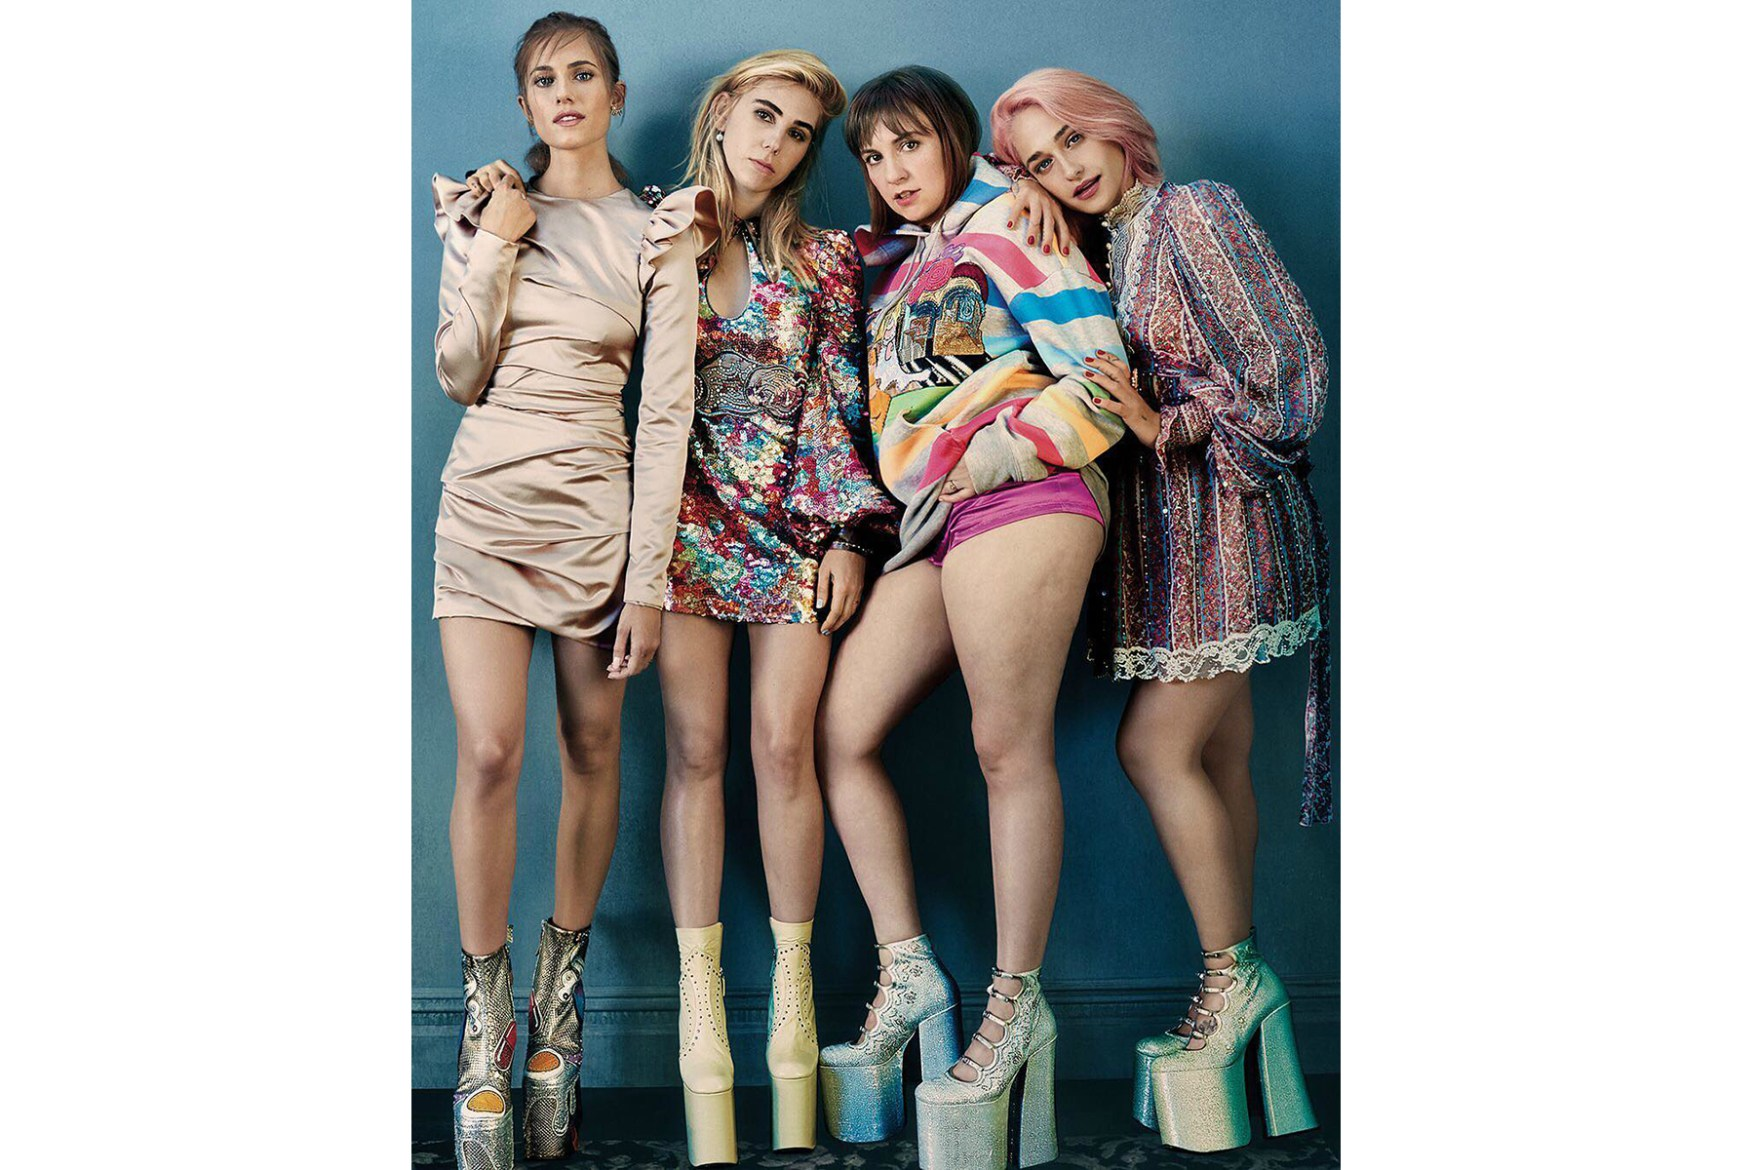 Lena Dunham and 'Girls' Cast on 'Glamour' 2017 February ...